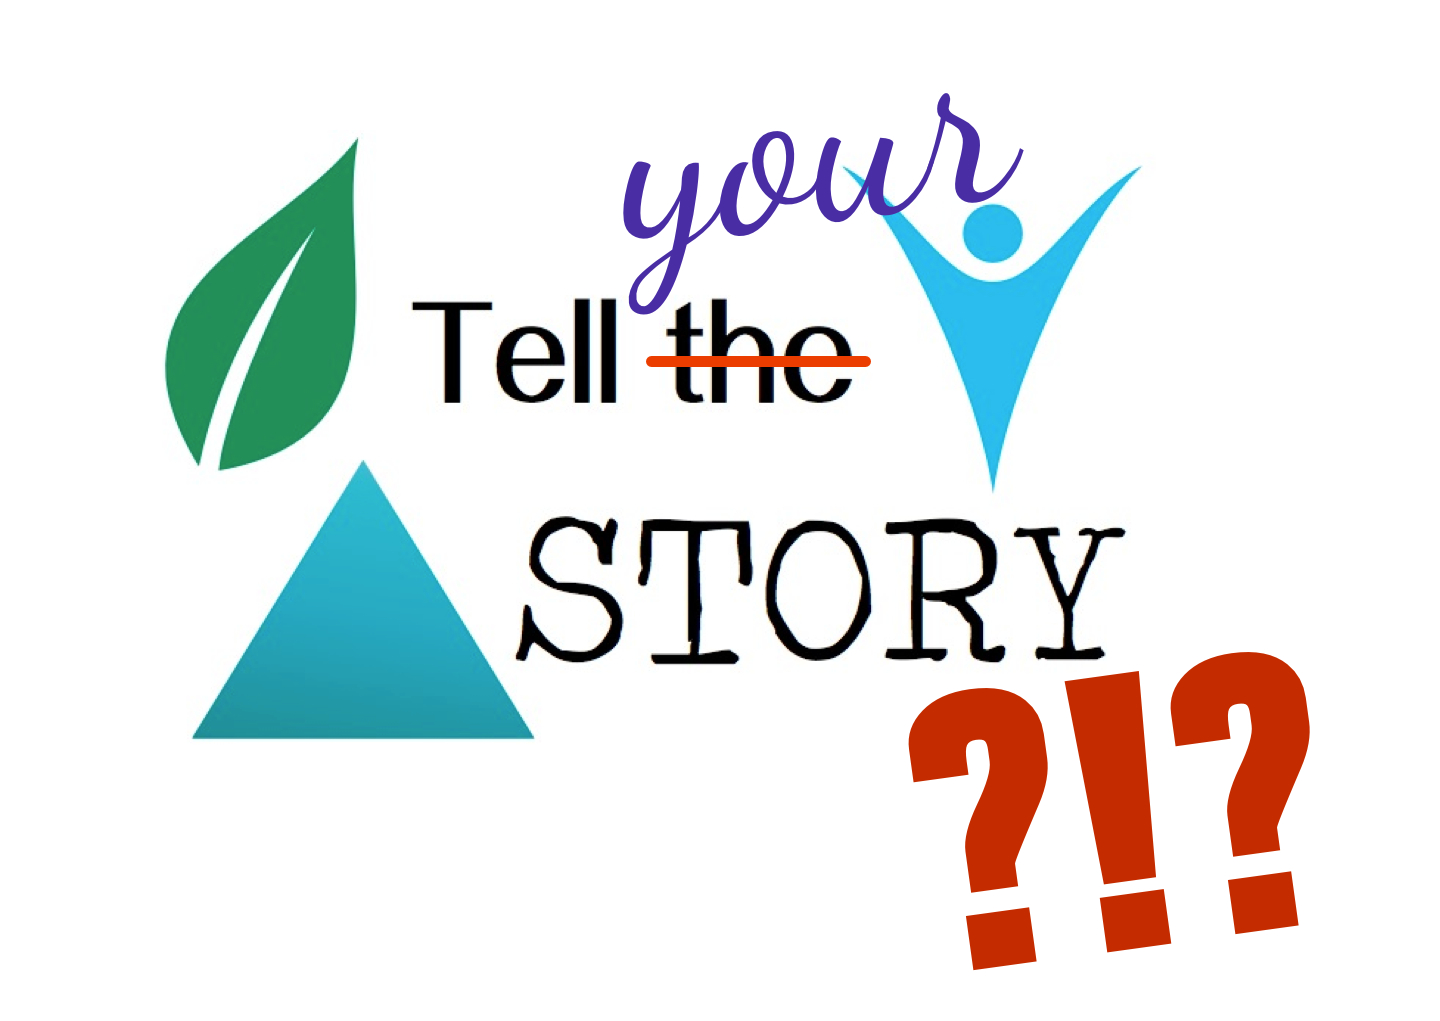 Chiropractic - Tell the Story?